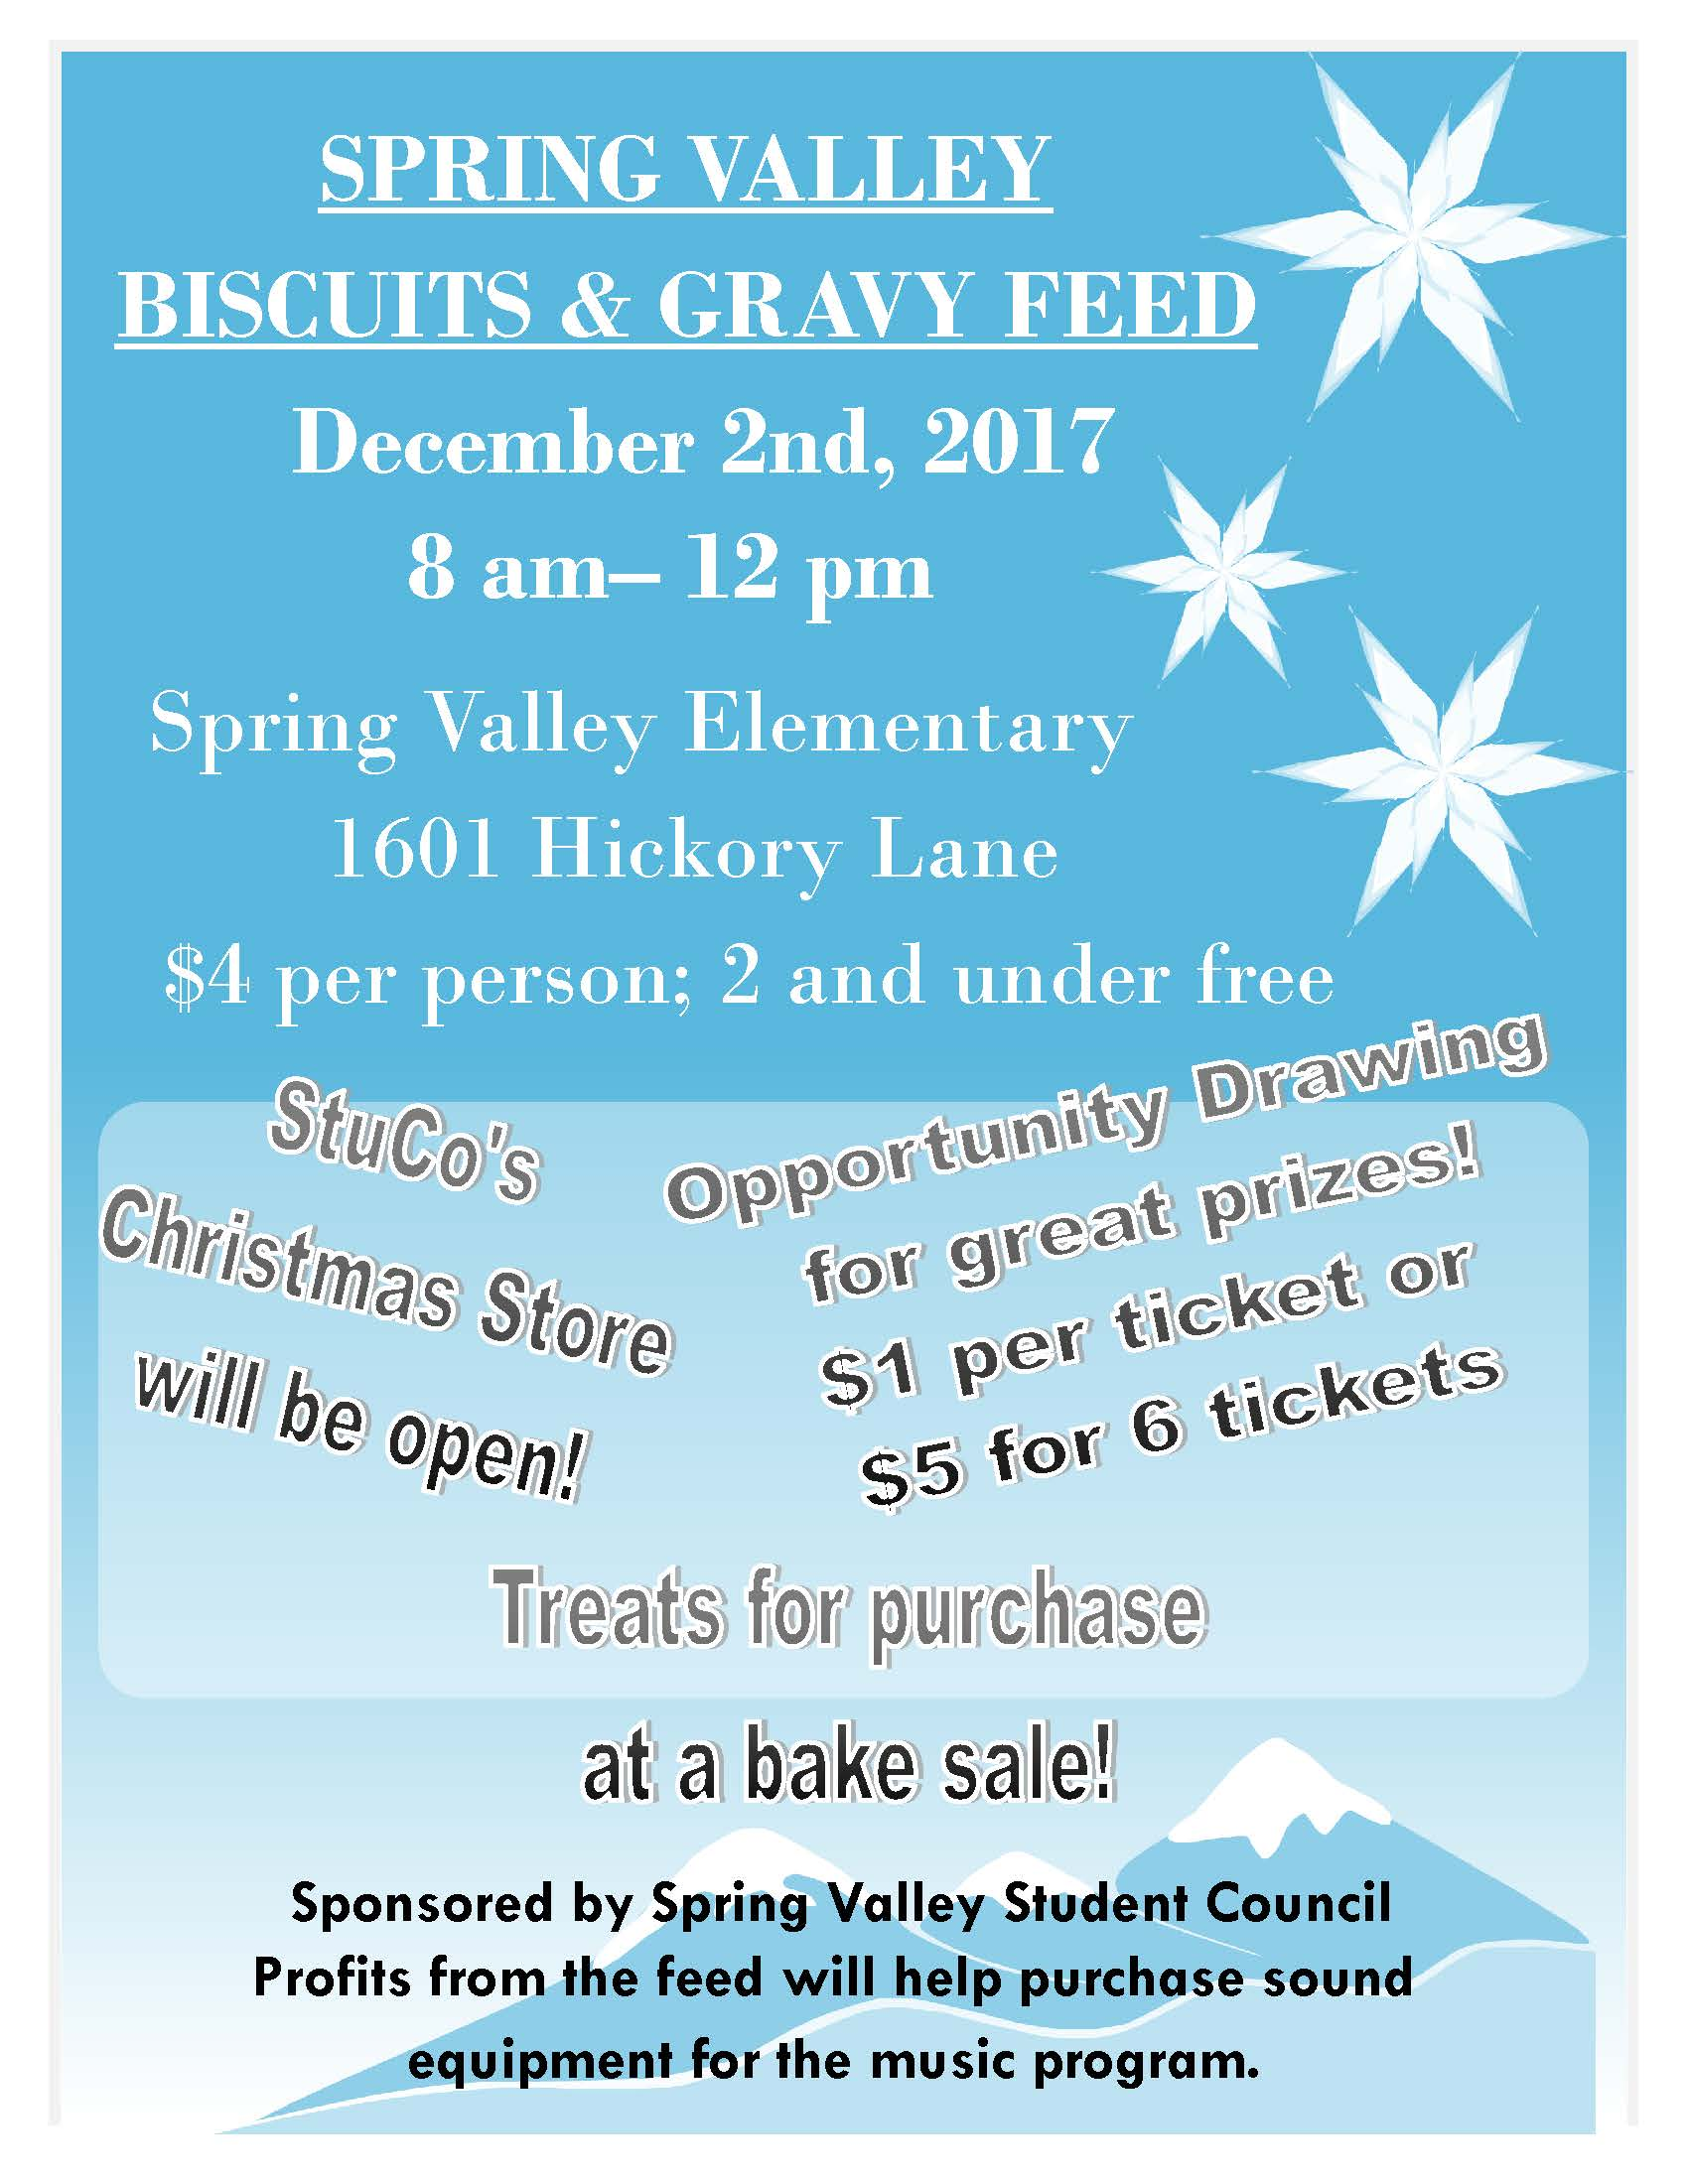 SV Biscuits and Gravy Feed Flyer